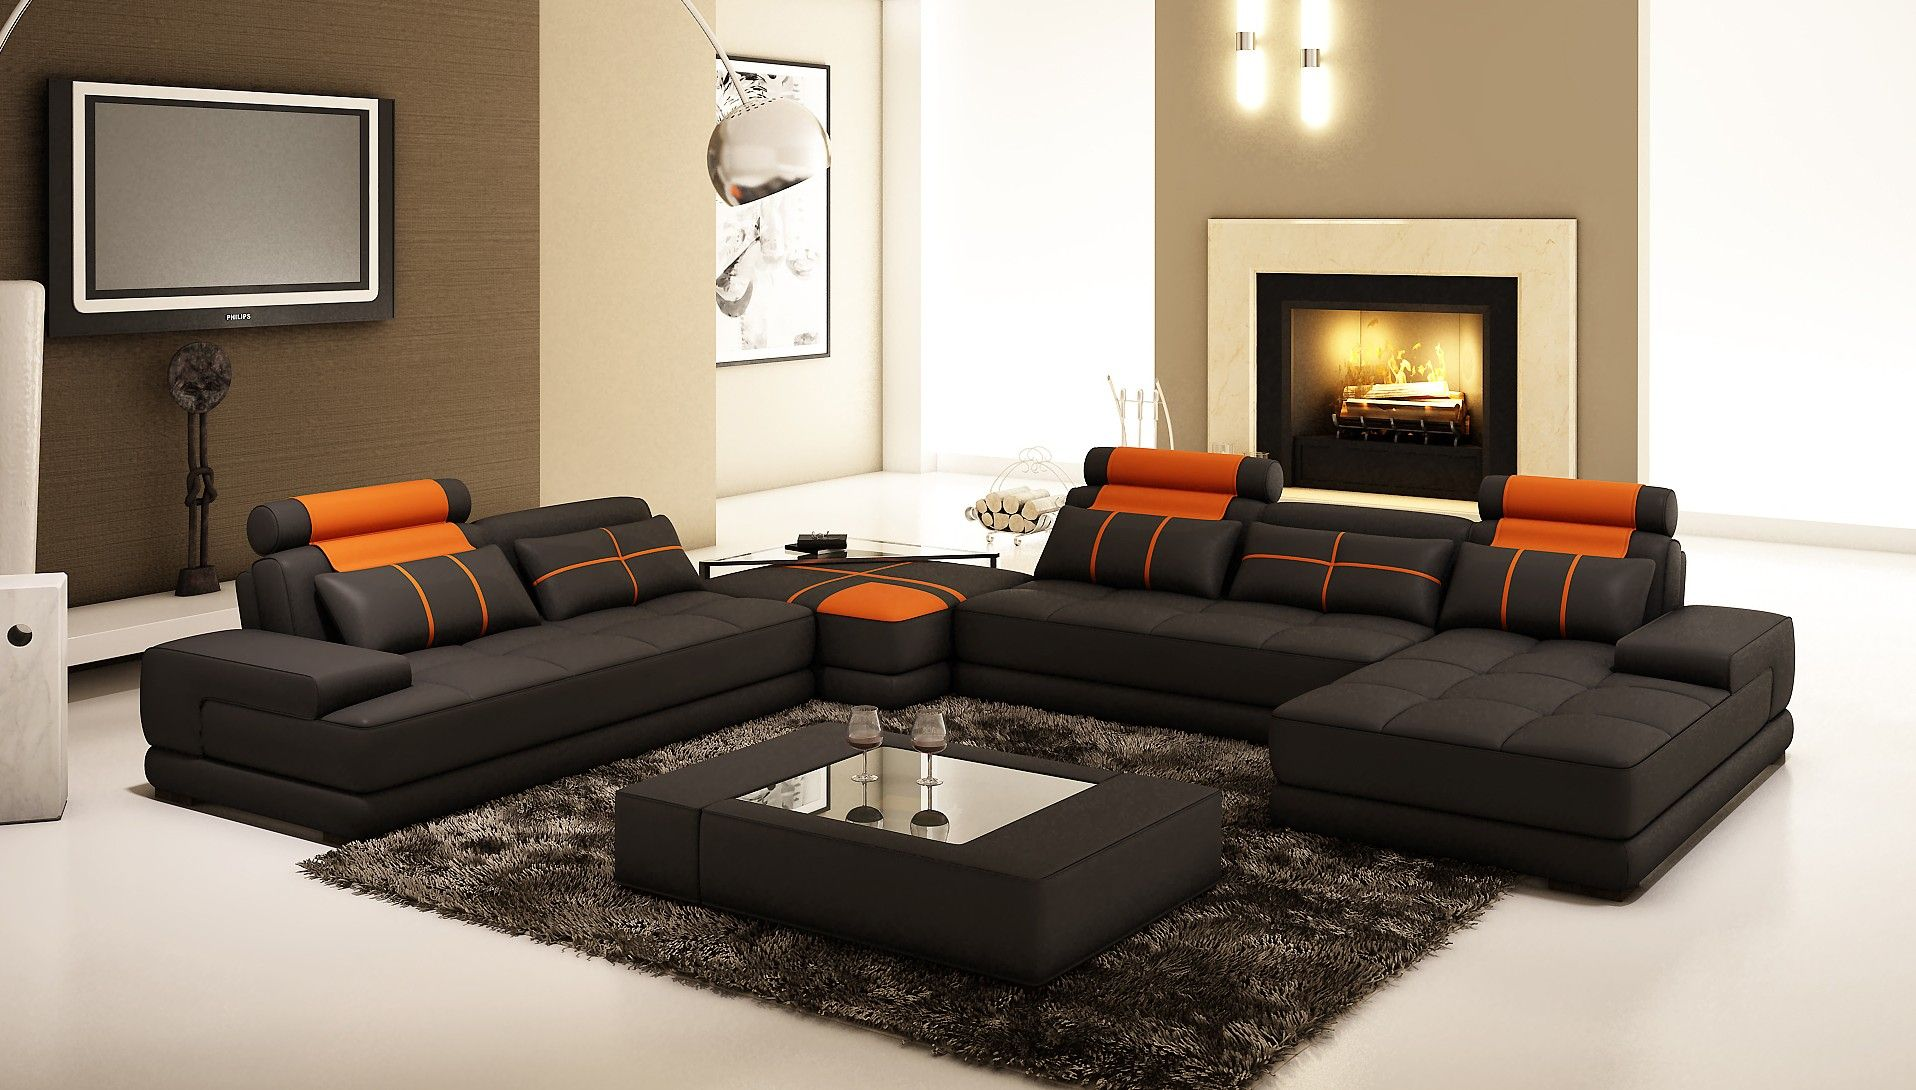 Living room black orange leather sofa with cushions plus - Black and orange living room ideas ...